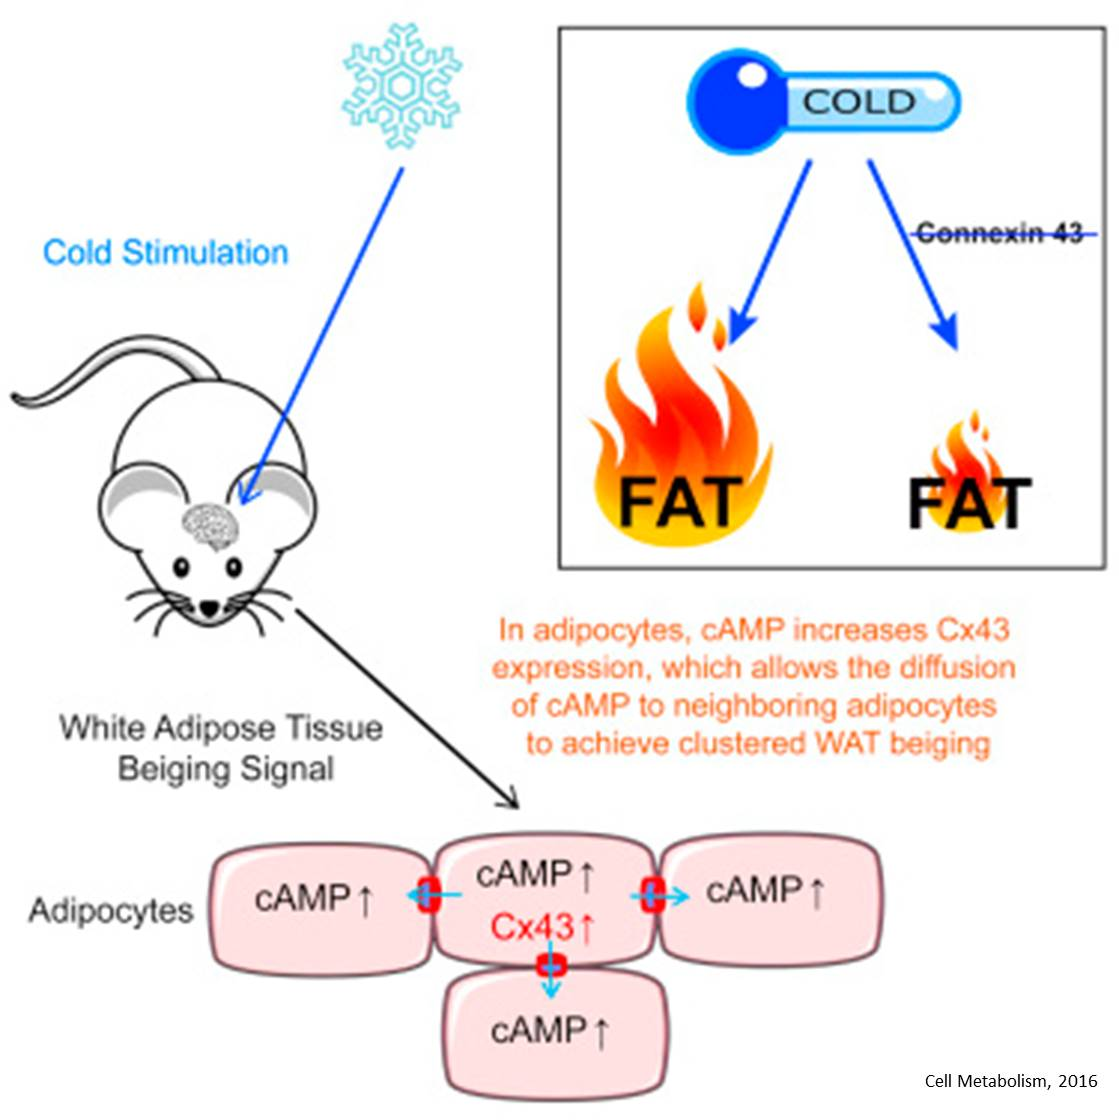 Fat cells that amplify nerve signals in response to cold also affect blood sugar metabolism